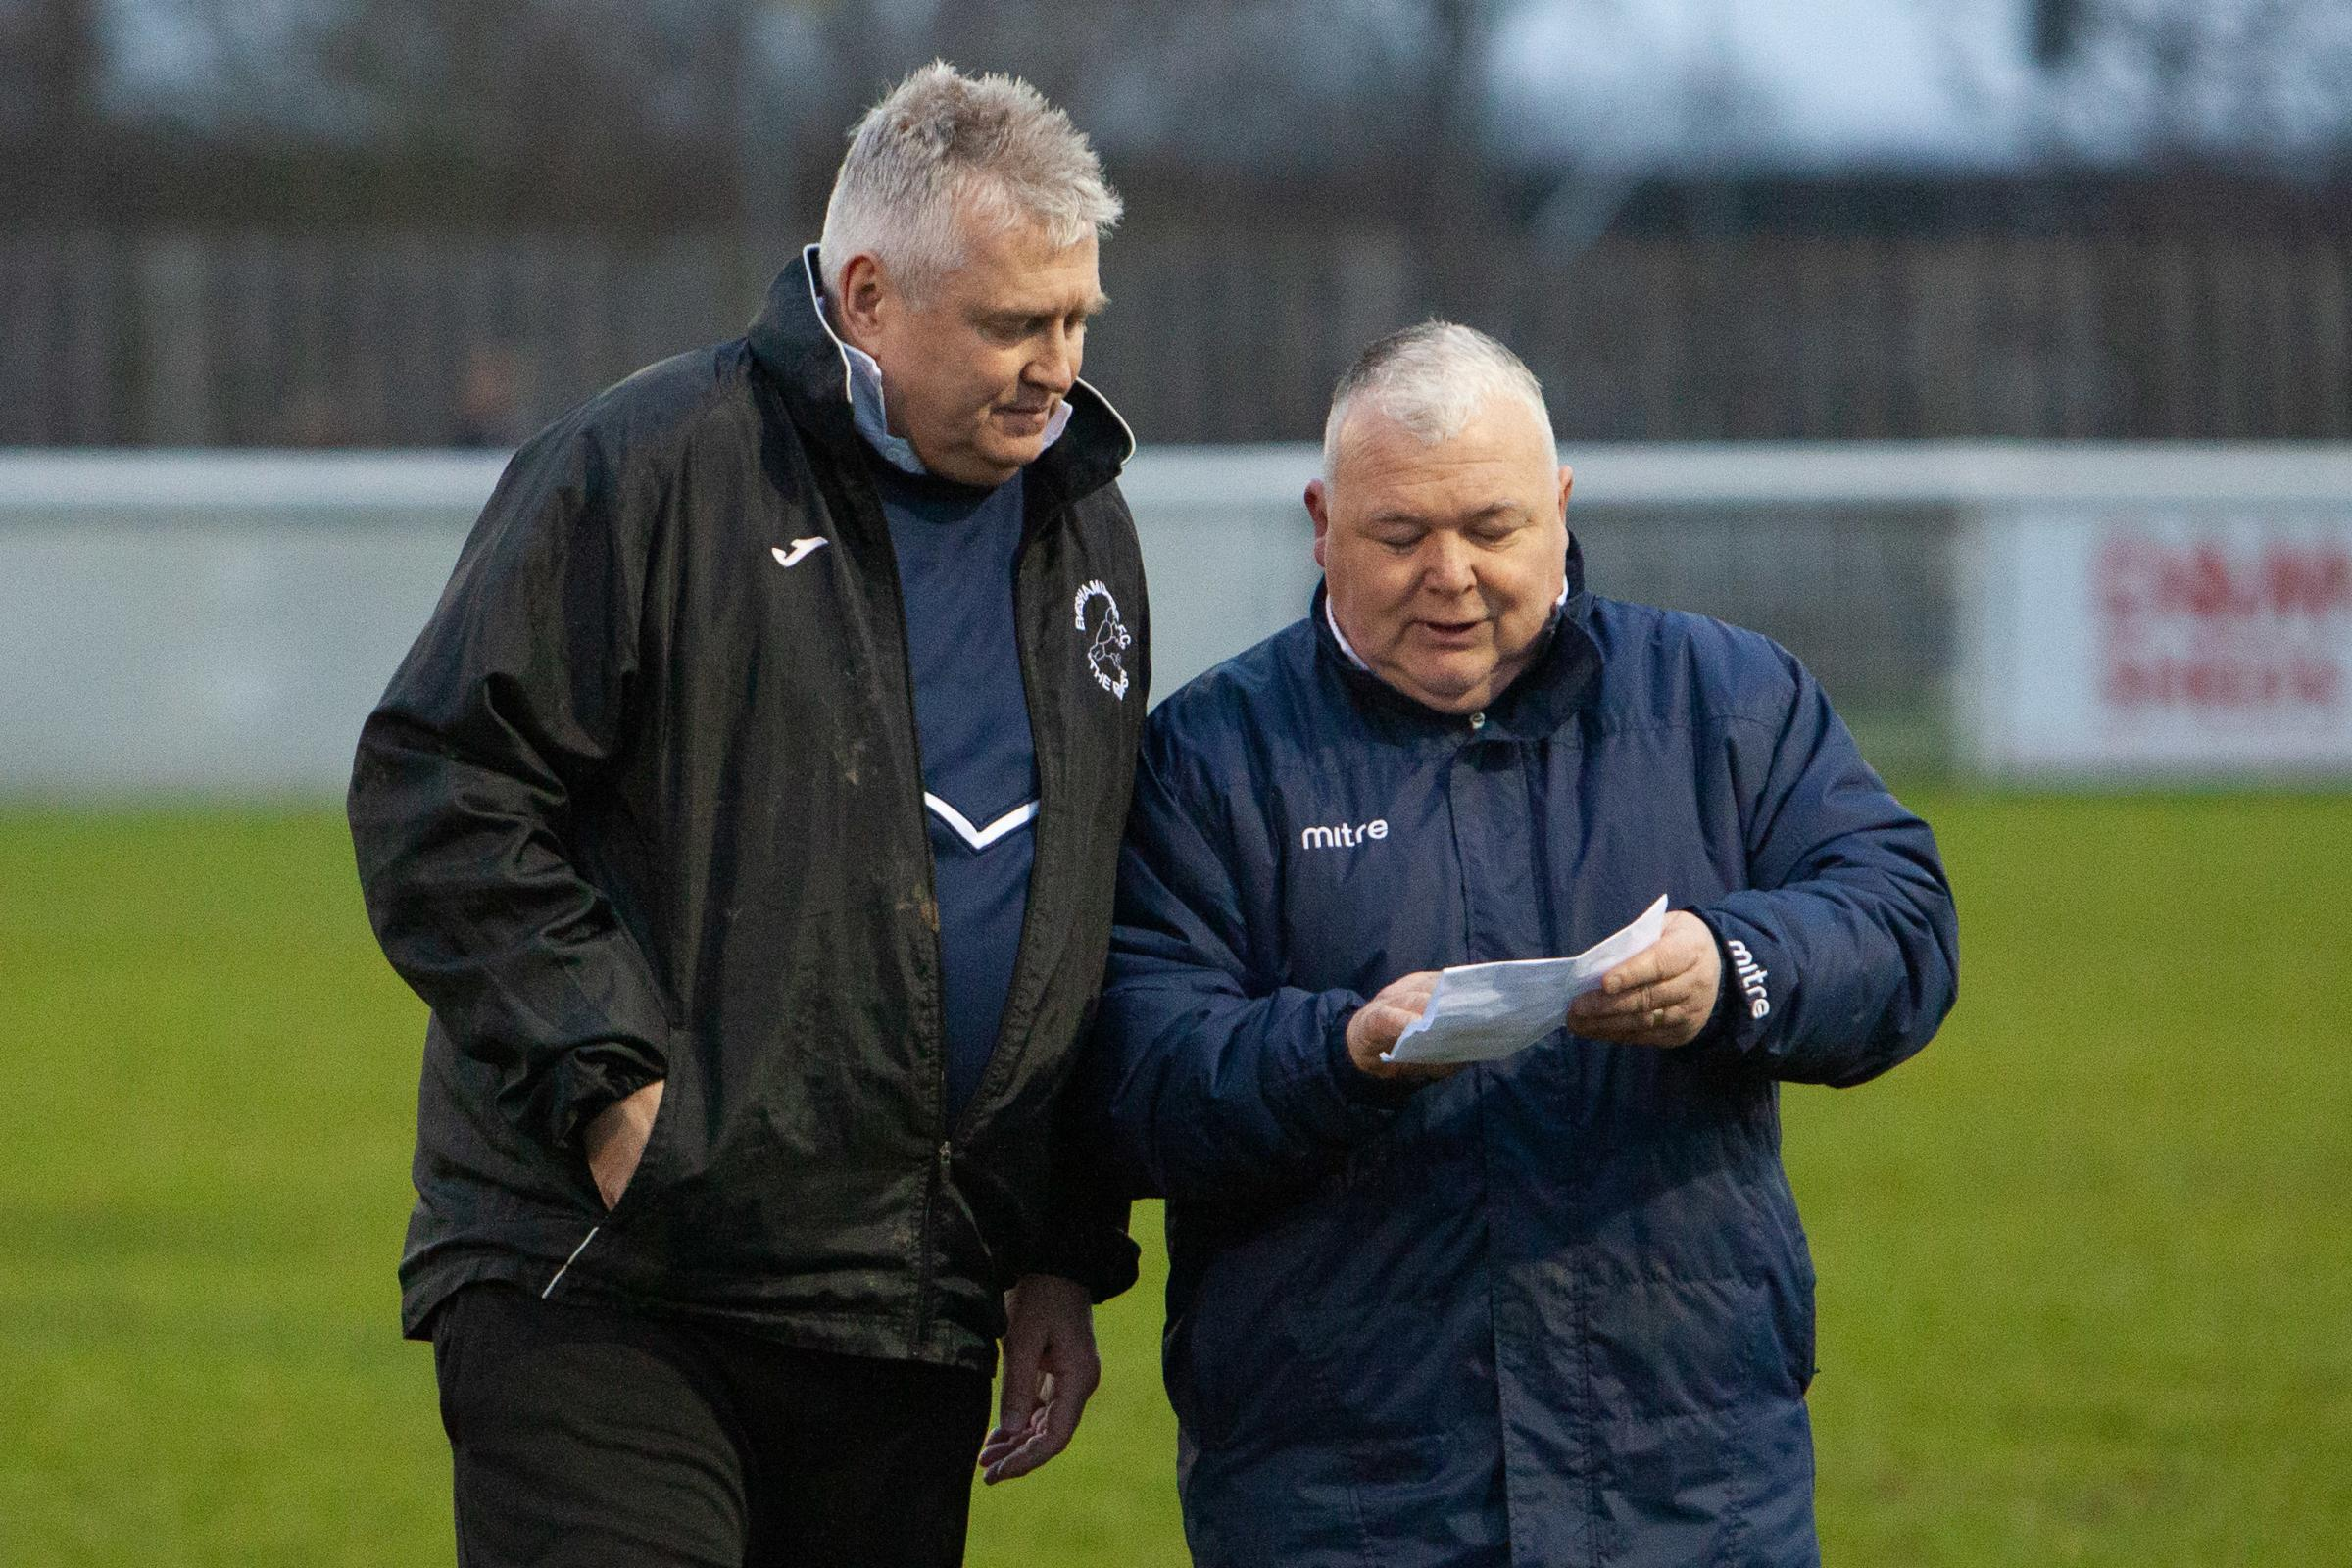 TALKING TACTICS: Paul Collicutt (left) and assisant Gerry Oldham. Pic: stuartpurfield.co.uk